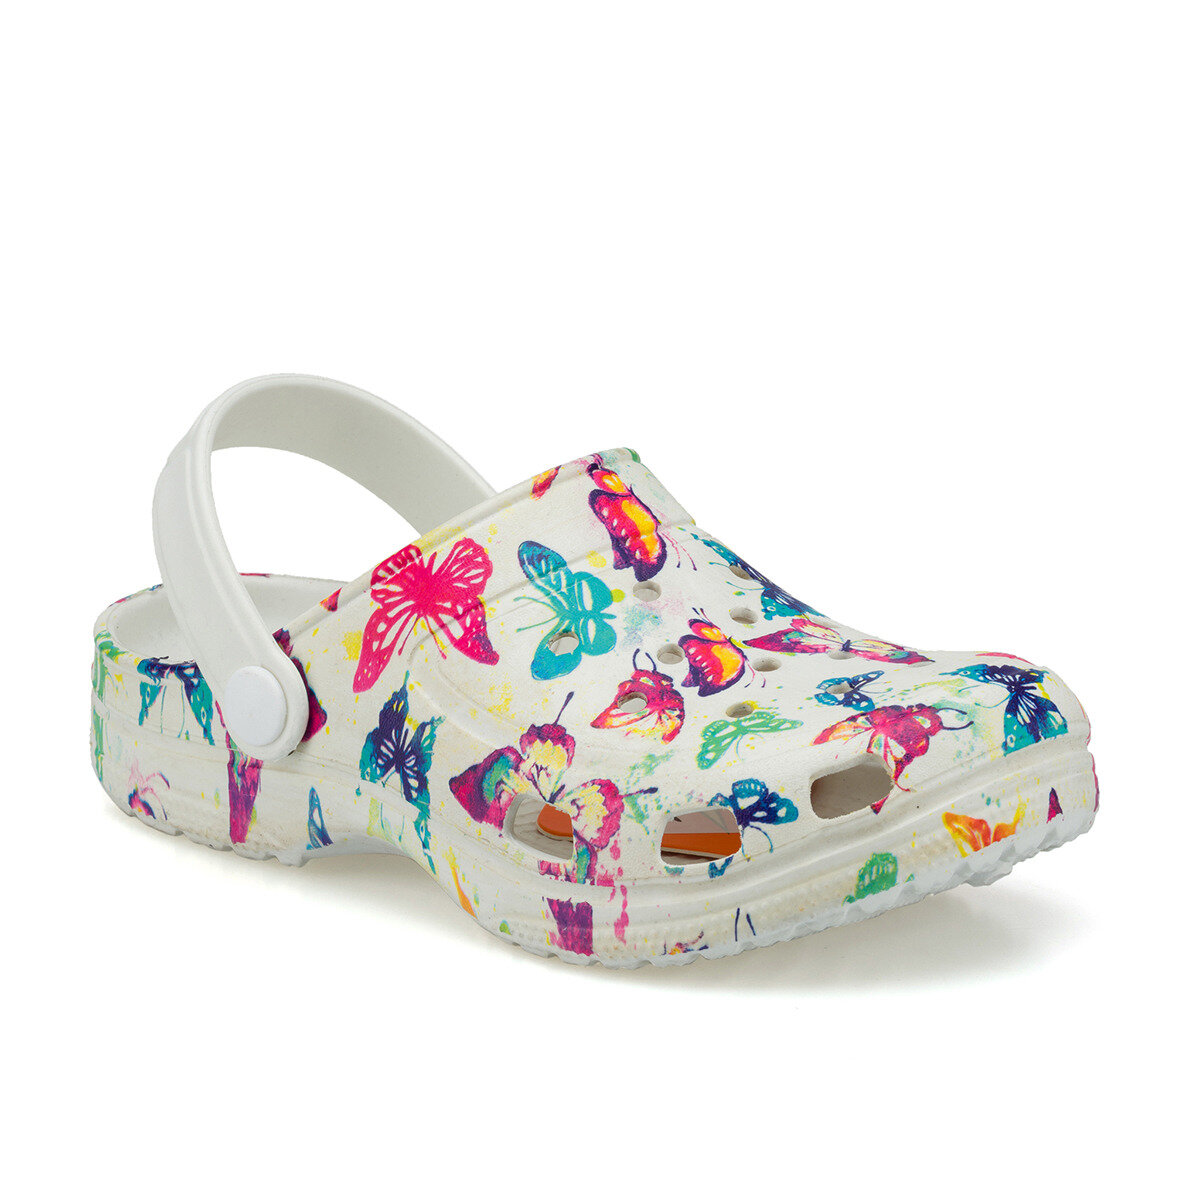 FLO FROG PRINT White Female Child Sea Shoes KINETIX